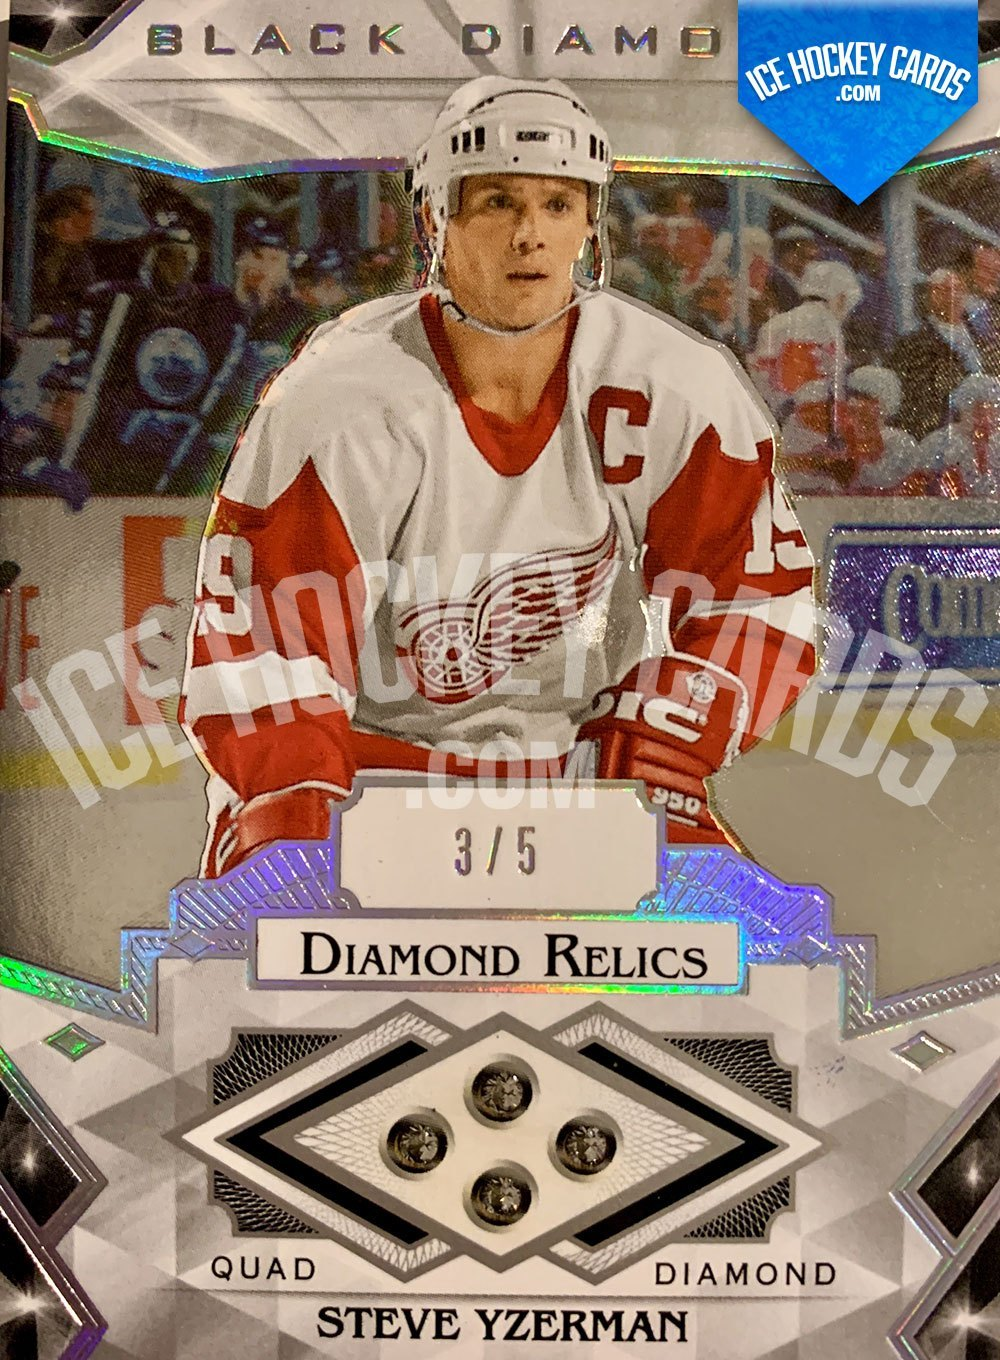 Upper Deck - Black Diamond 2019-20 - Steve Yzerman Quad Diamond Relics Card 3 to 5 SUPER RARE